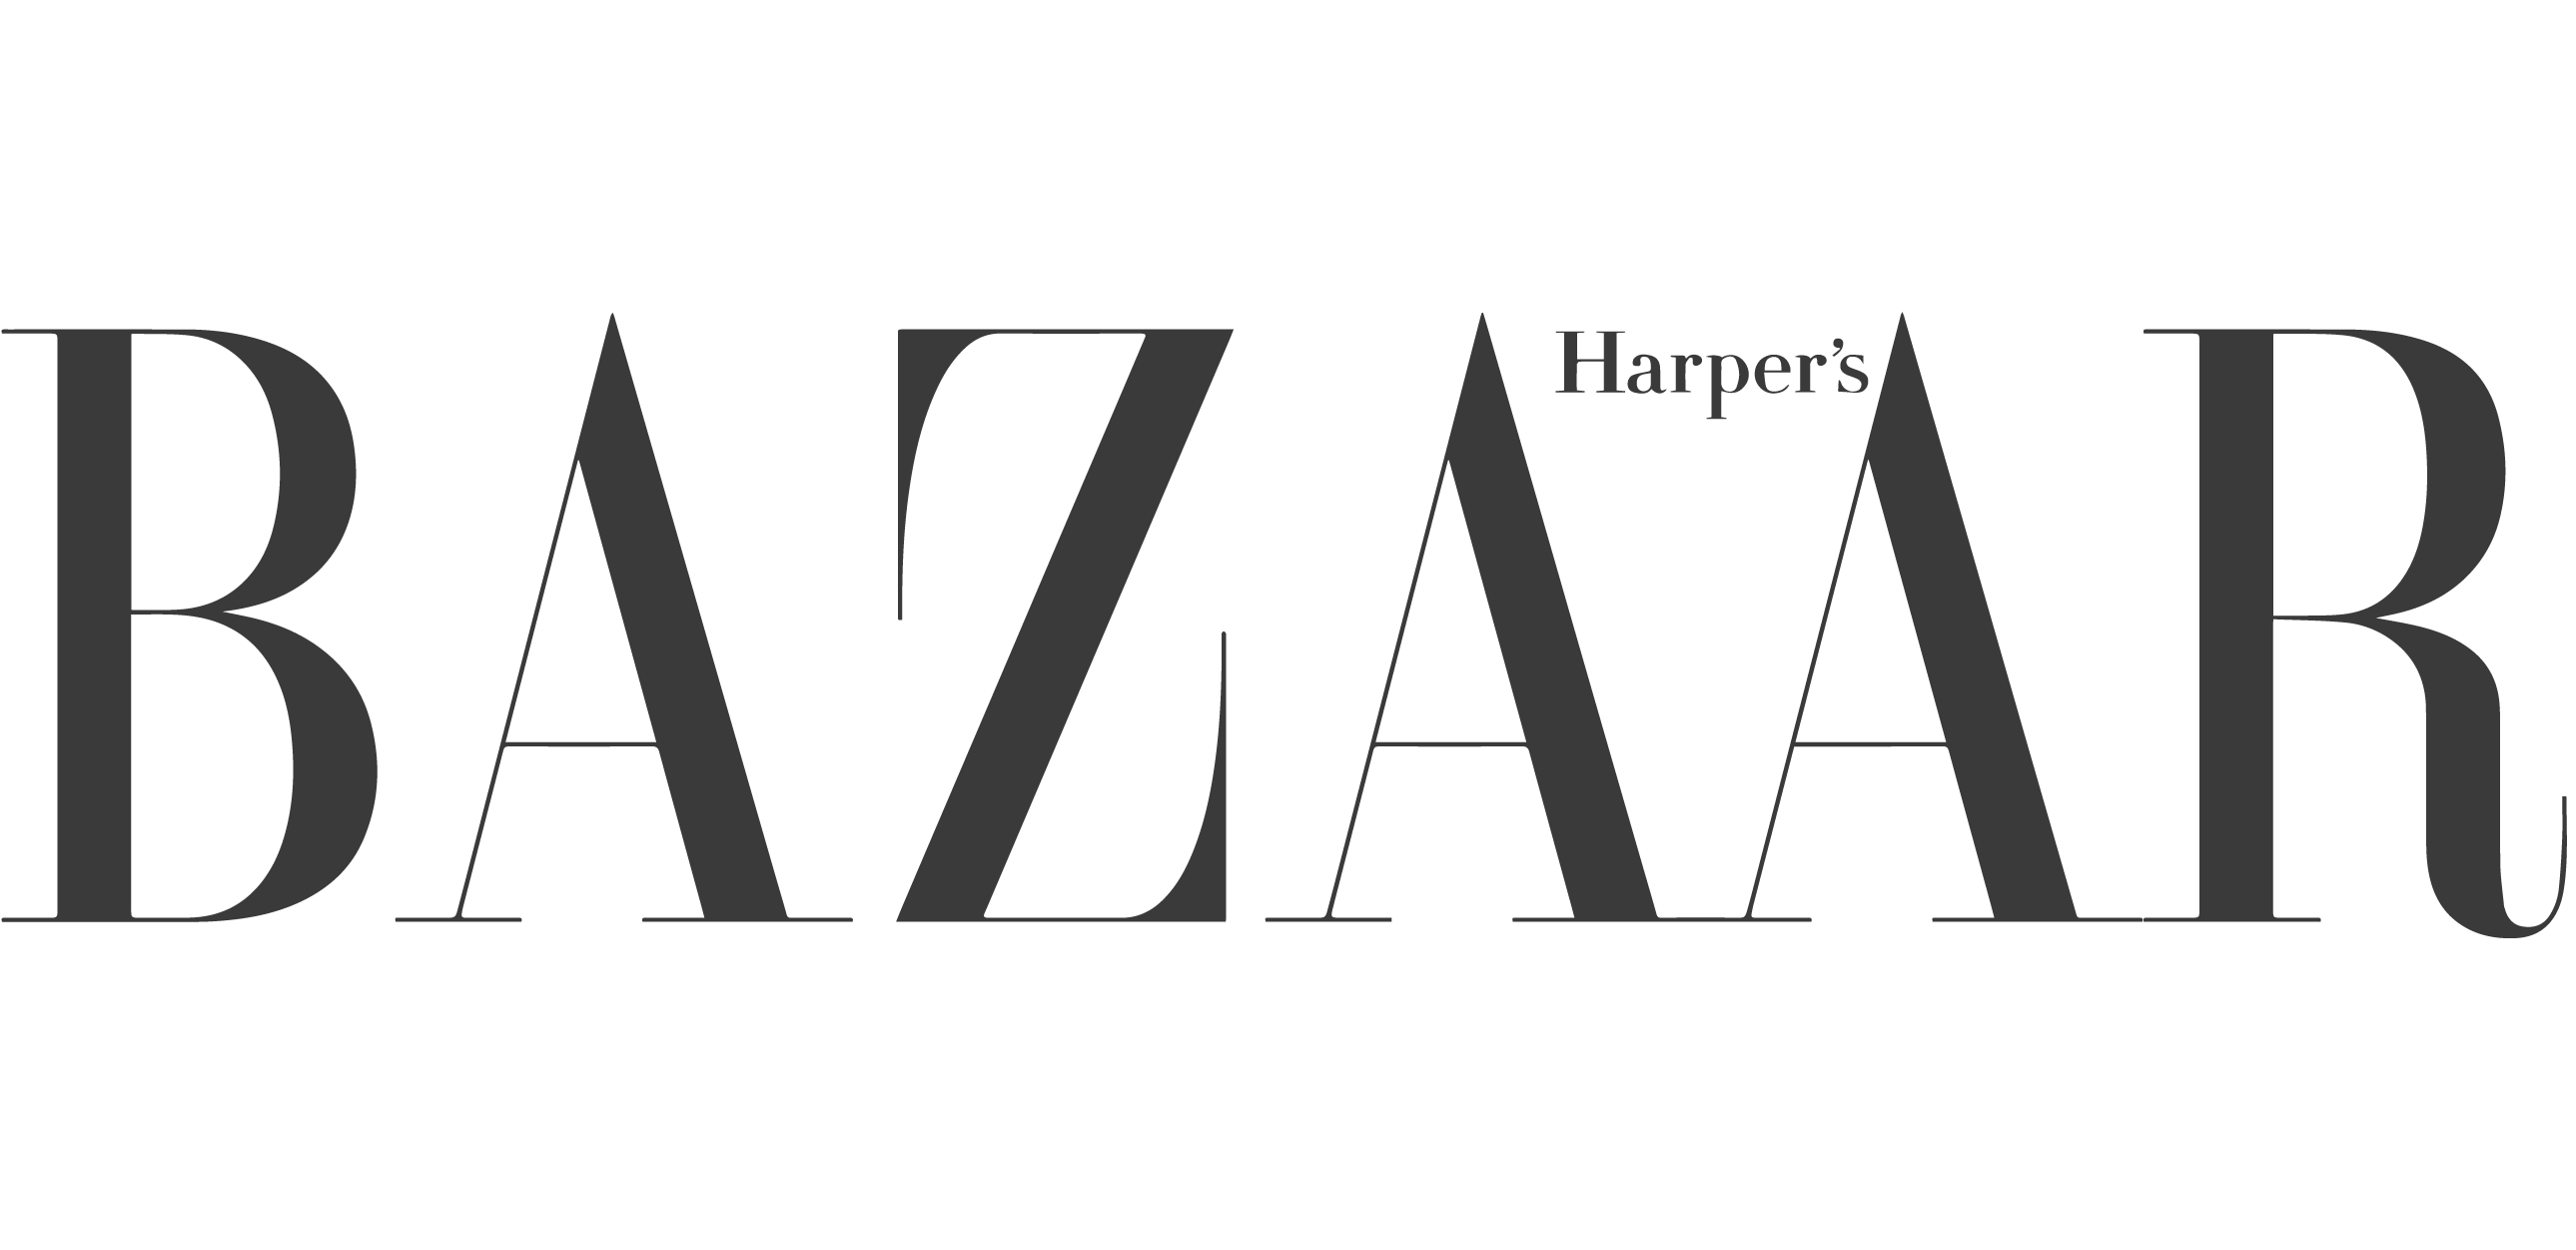 Purearth - Award-Winning Harpers Bazaar